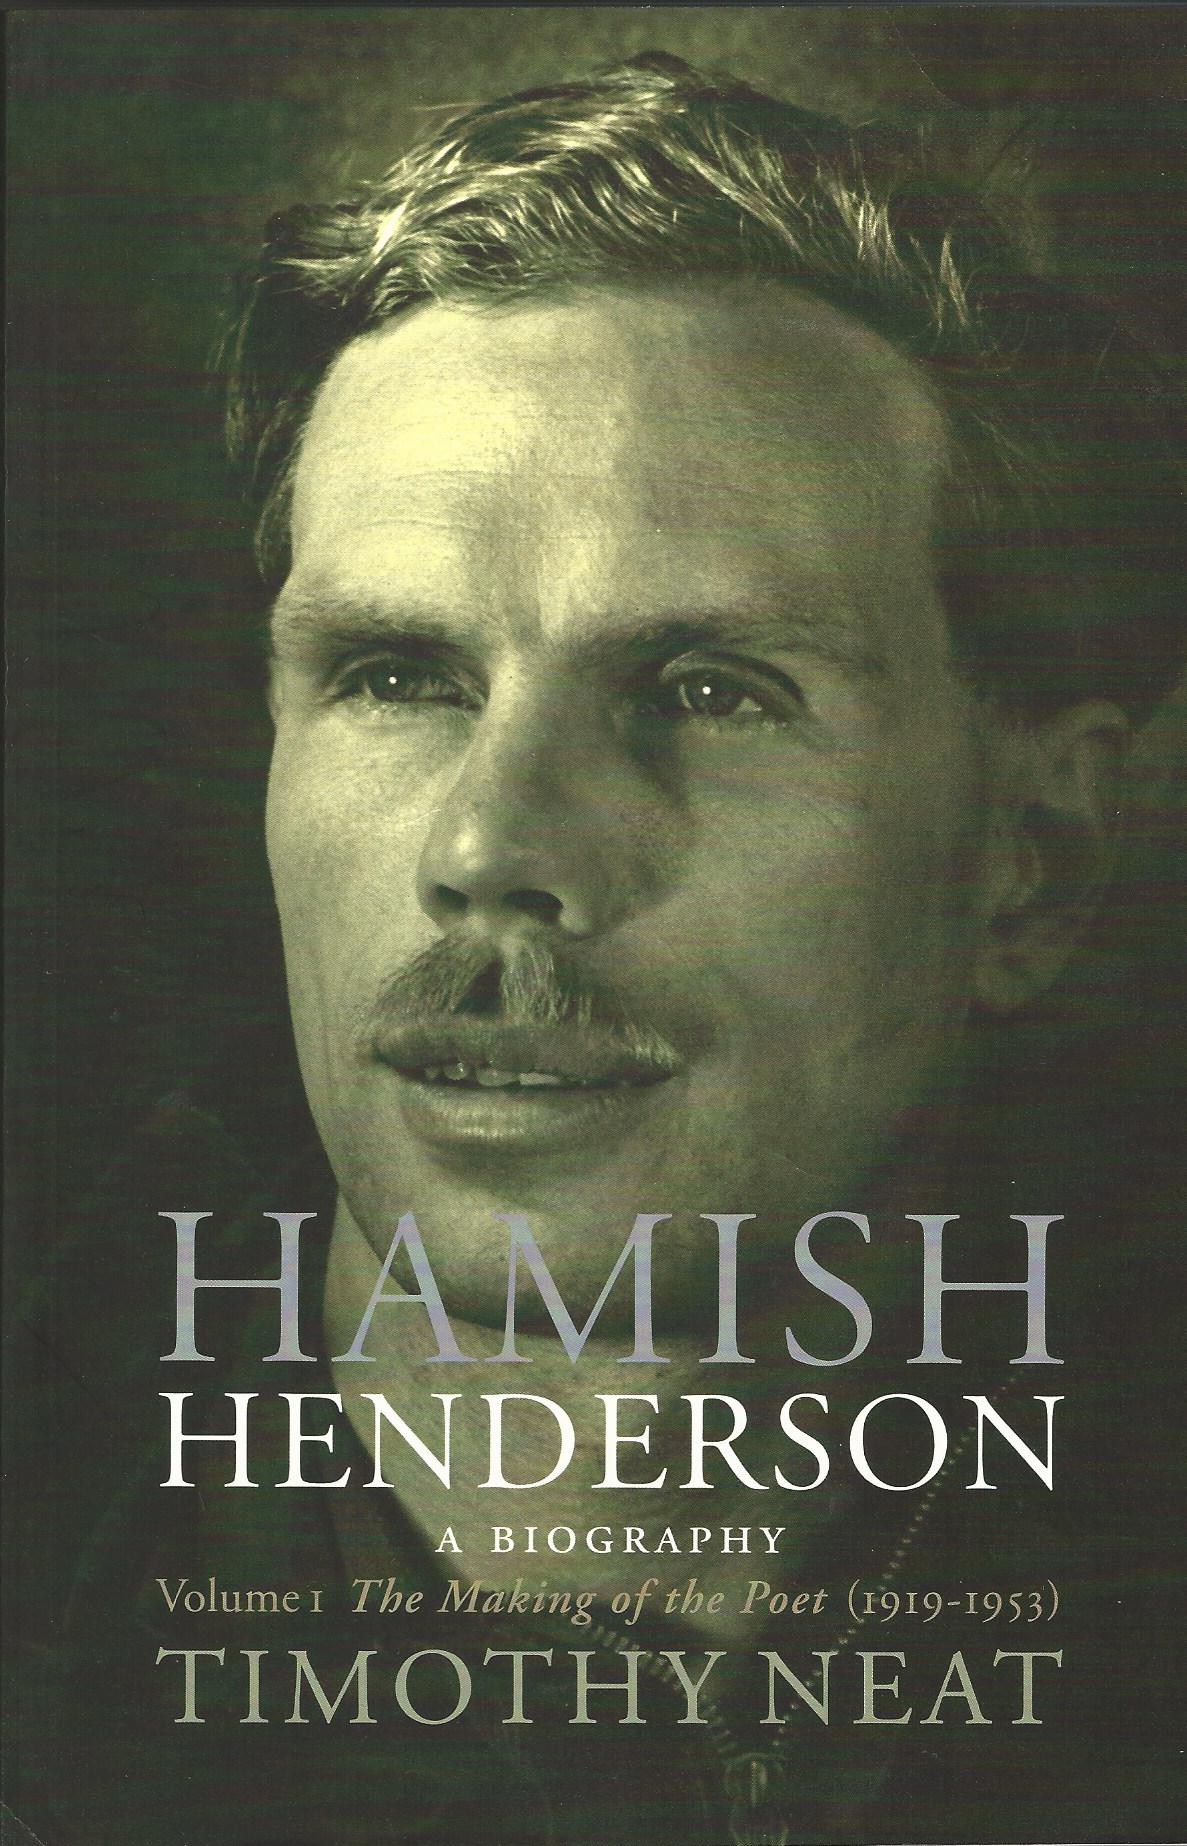 Image for Hamish Henderson - A Biography: Volume 1 The Making of the Poet 1919-1953